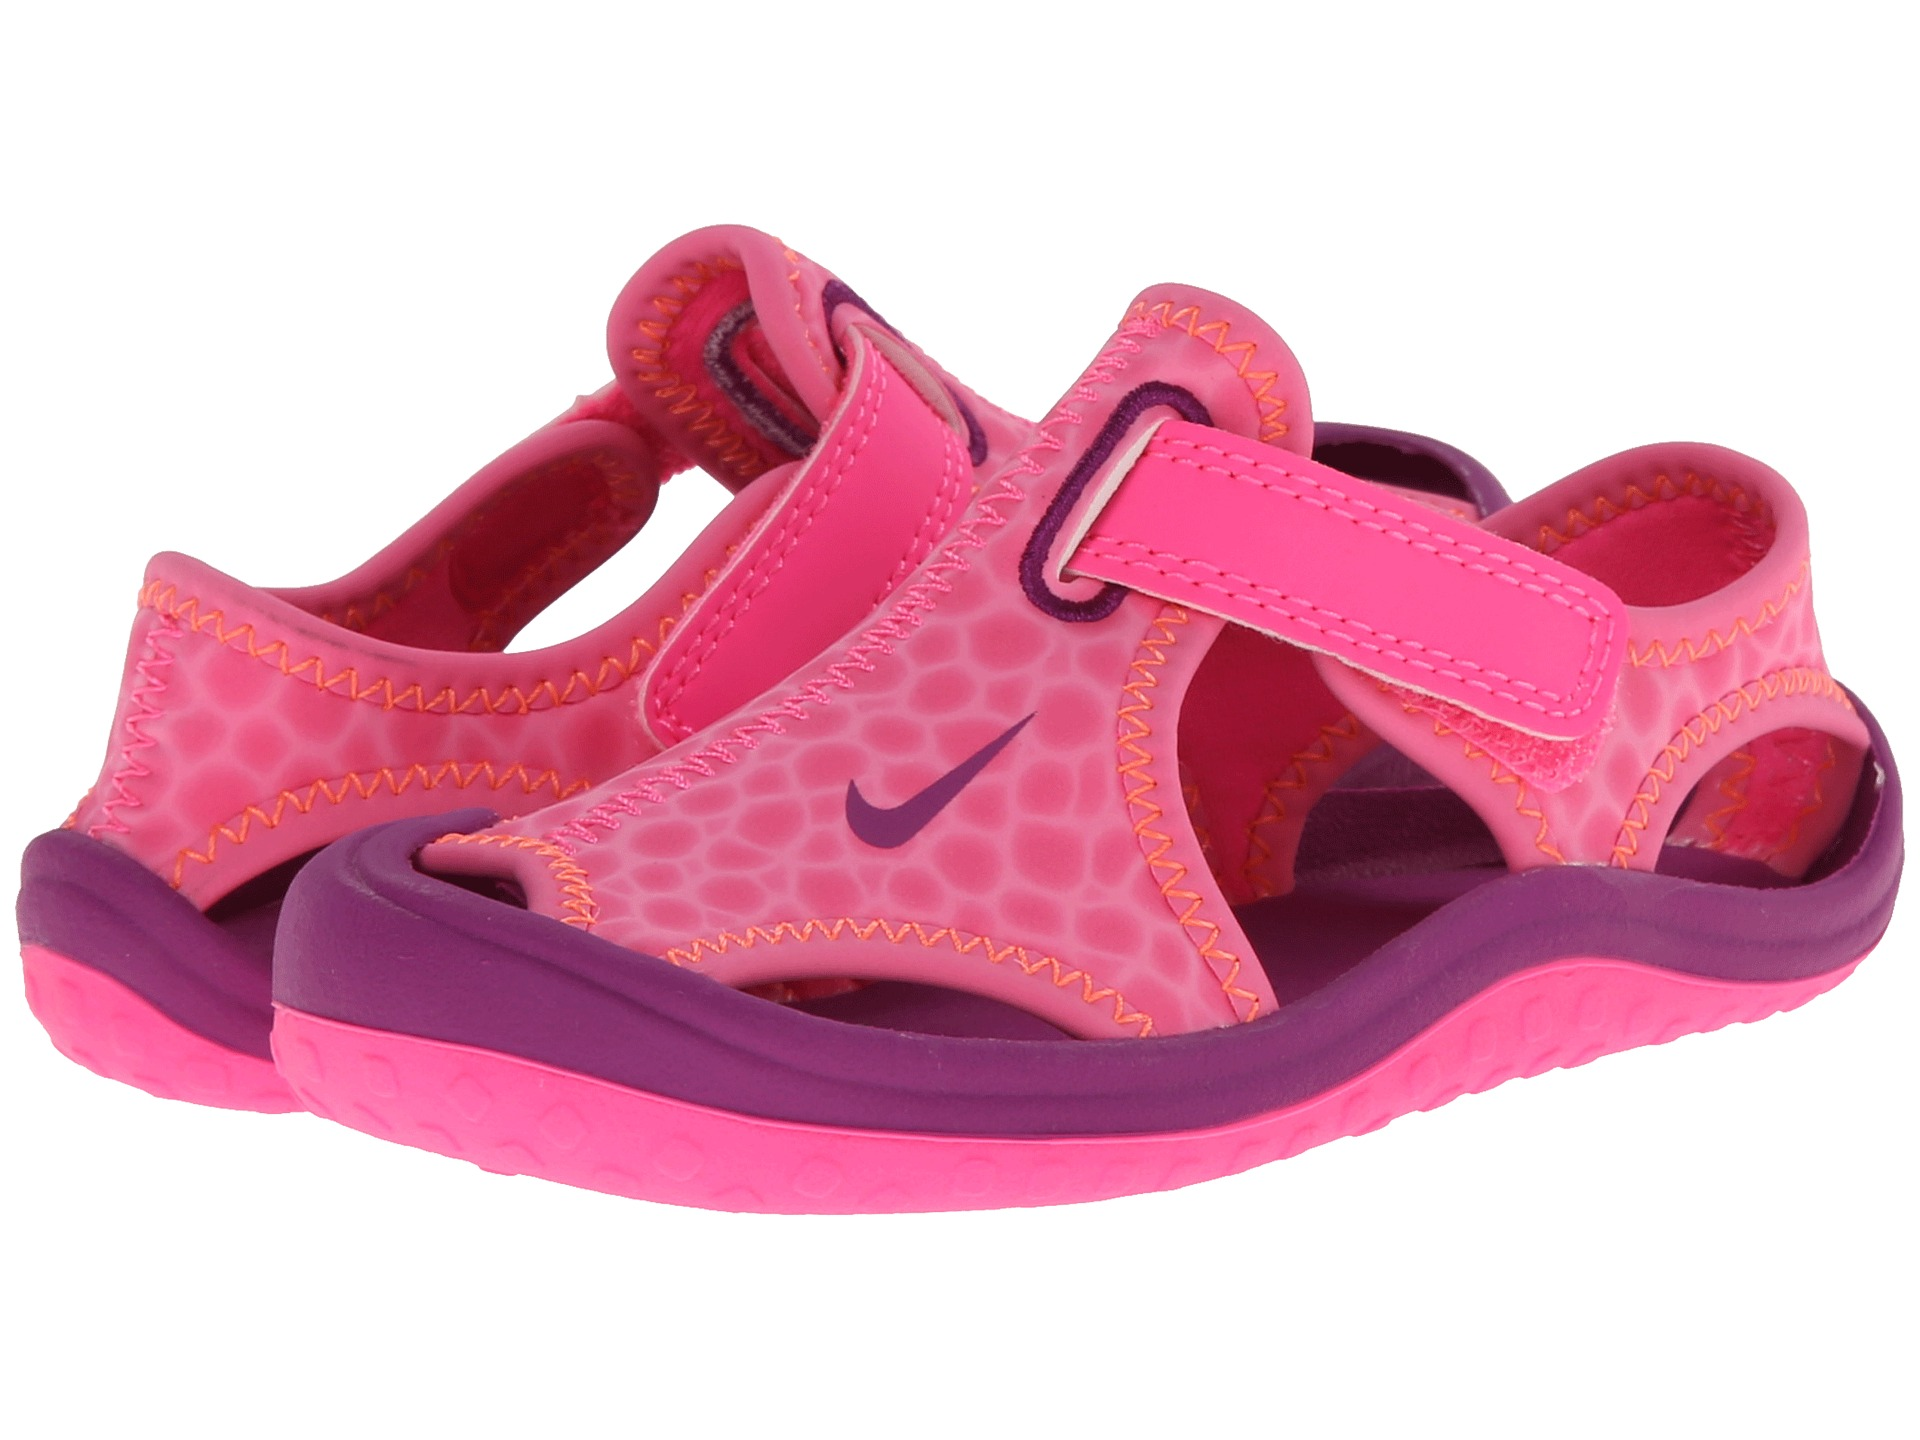 Nike Kids Sunray Protect Infant Toddler Zappos